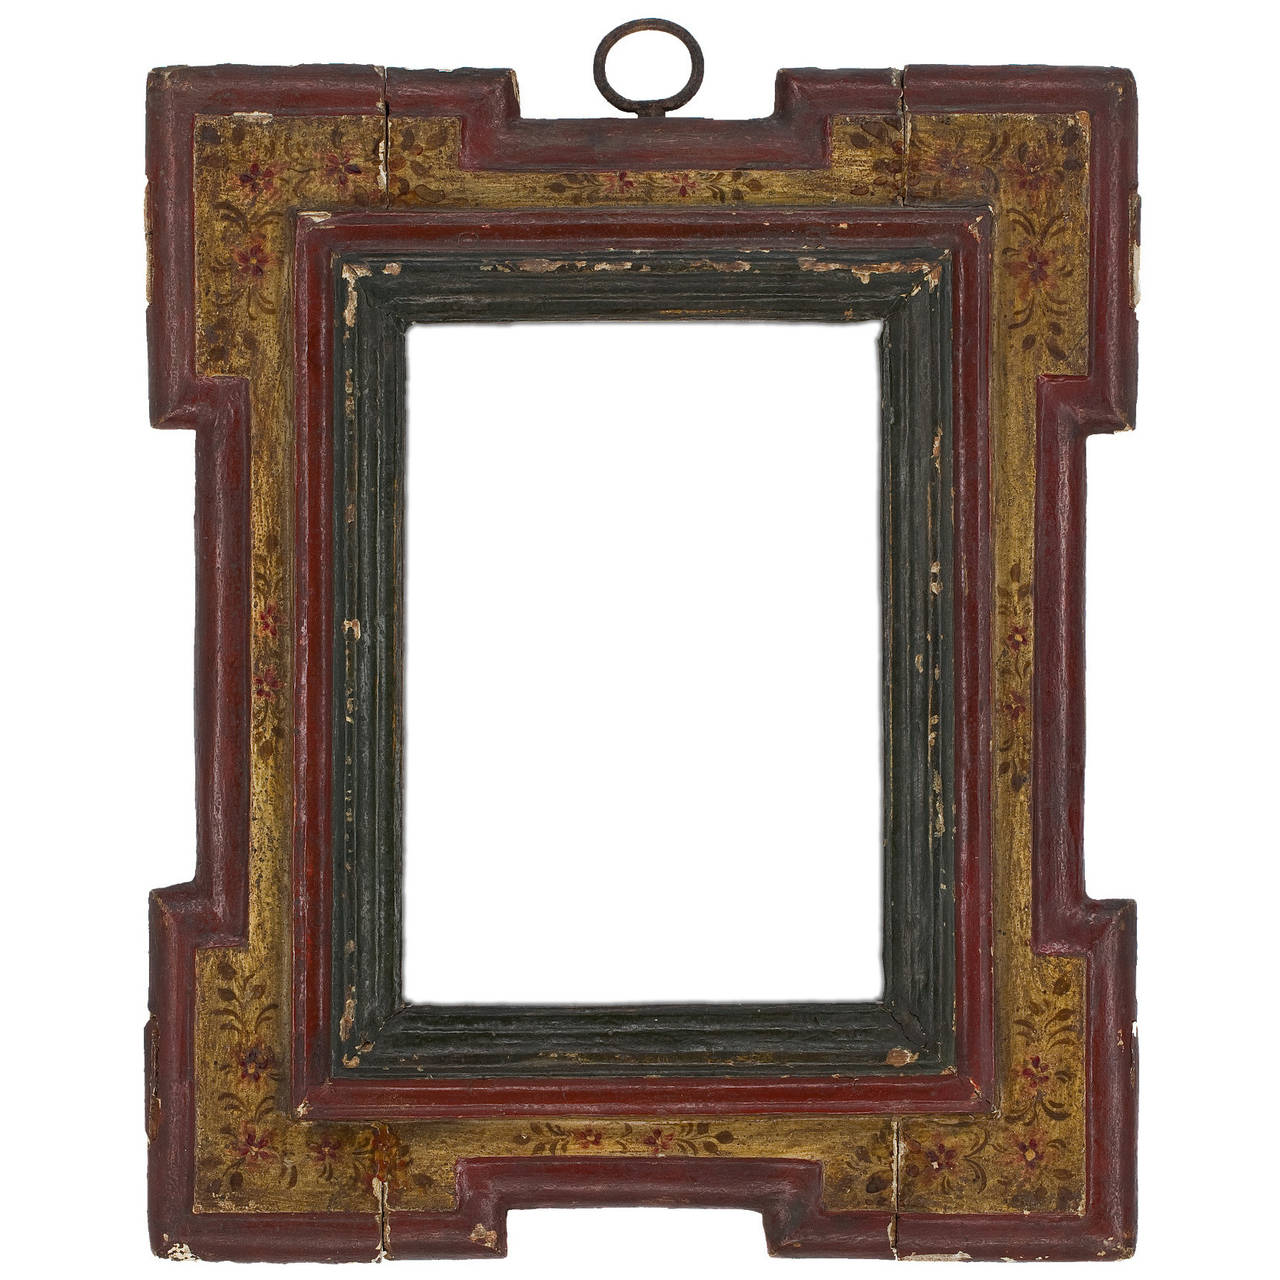 17th Century Spanish Polychrome Frame For Sale at 1stdibs